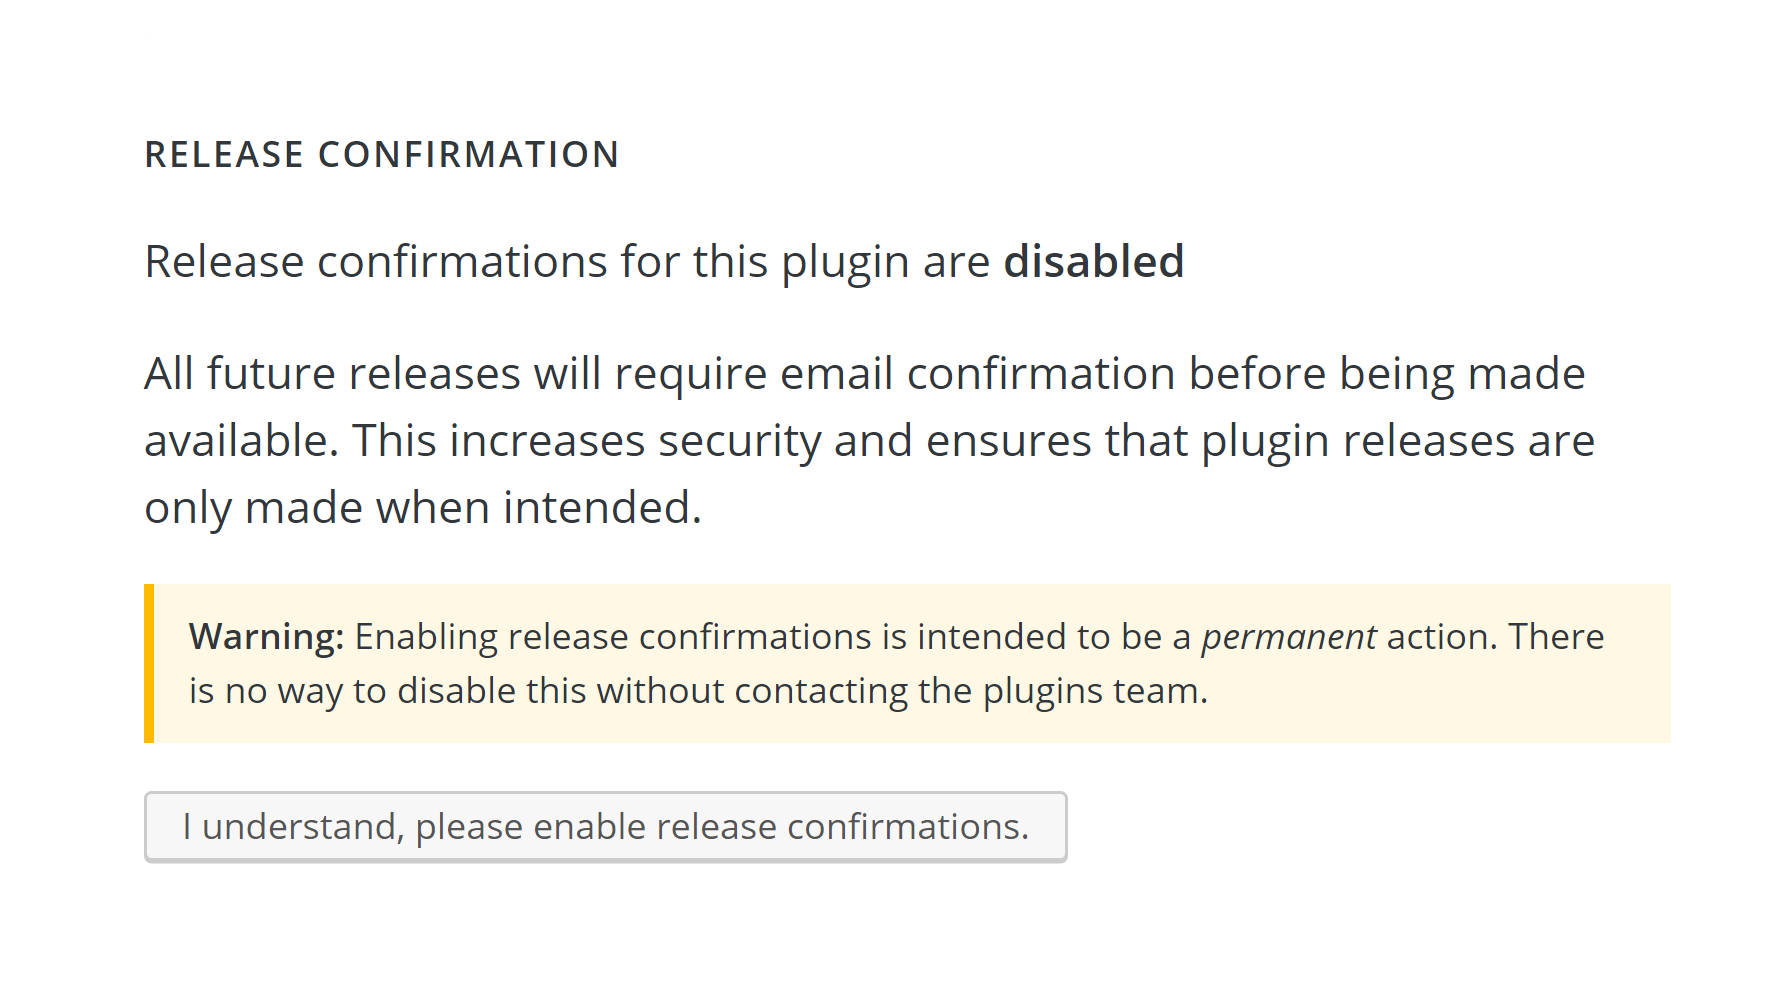 Screenshot of the plugin release confirmation email form.